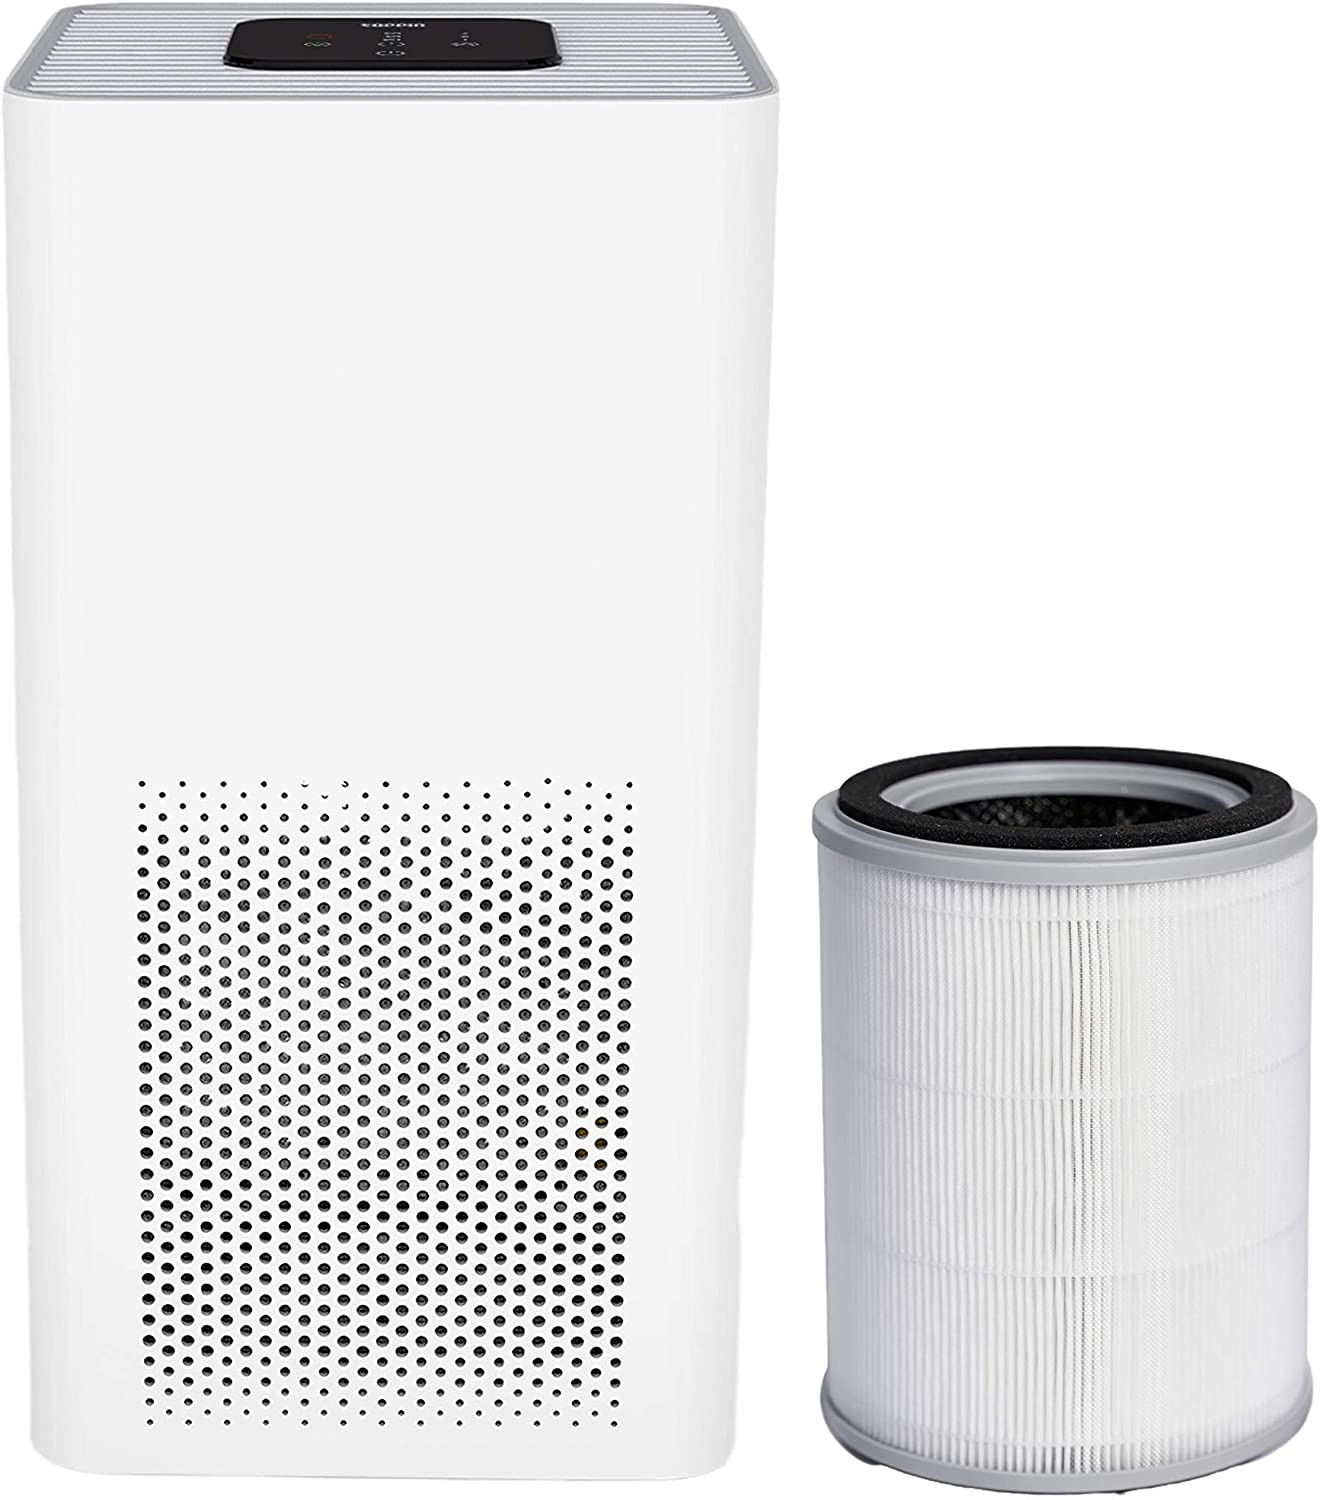 Replacement Filters For Toppin Air Purifiers